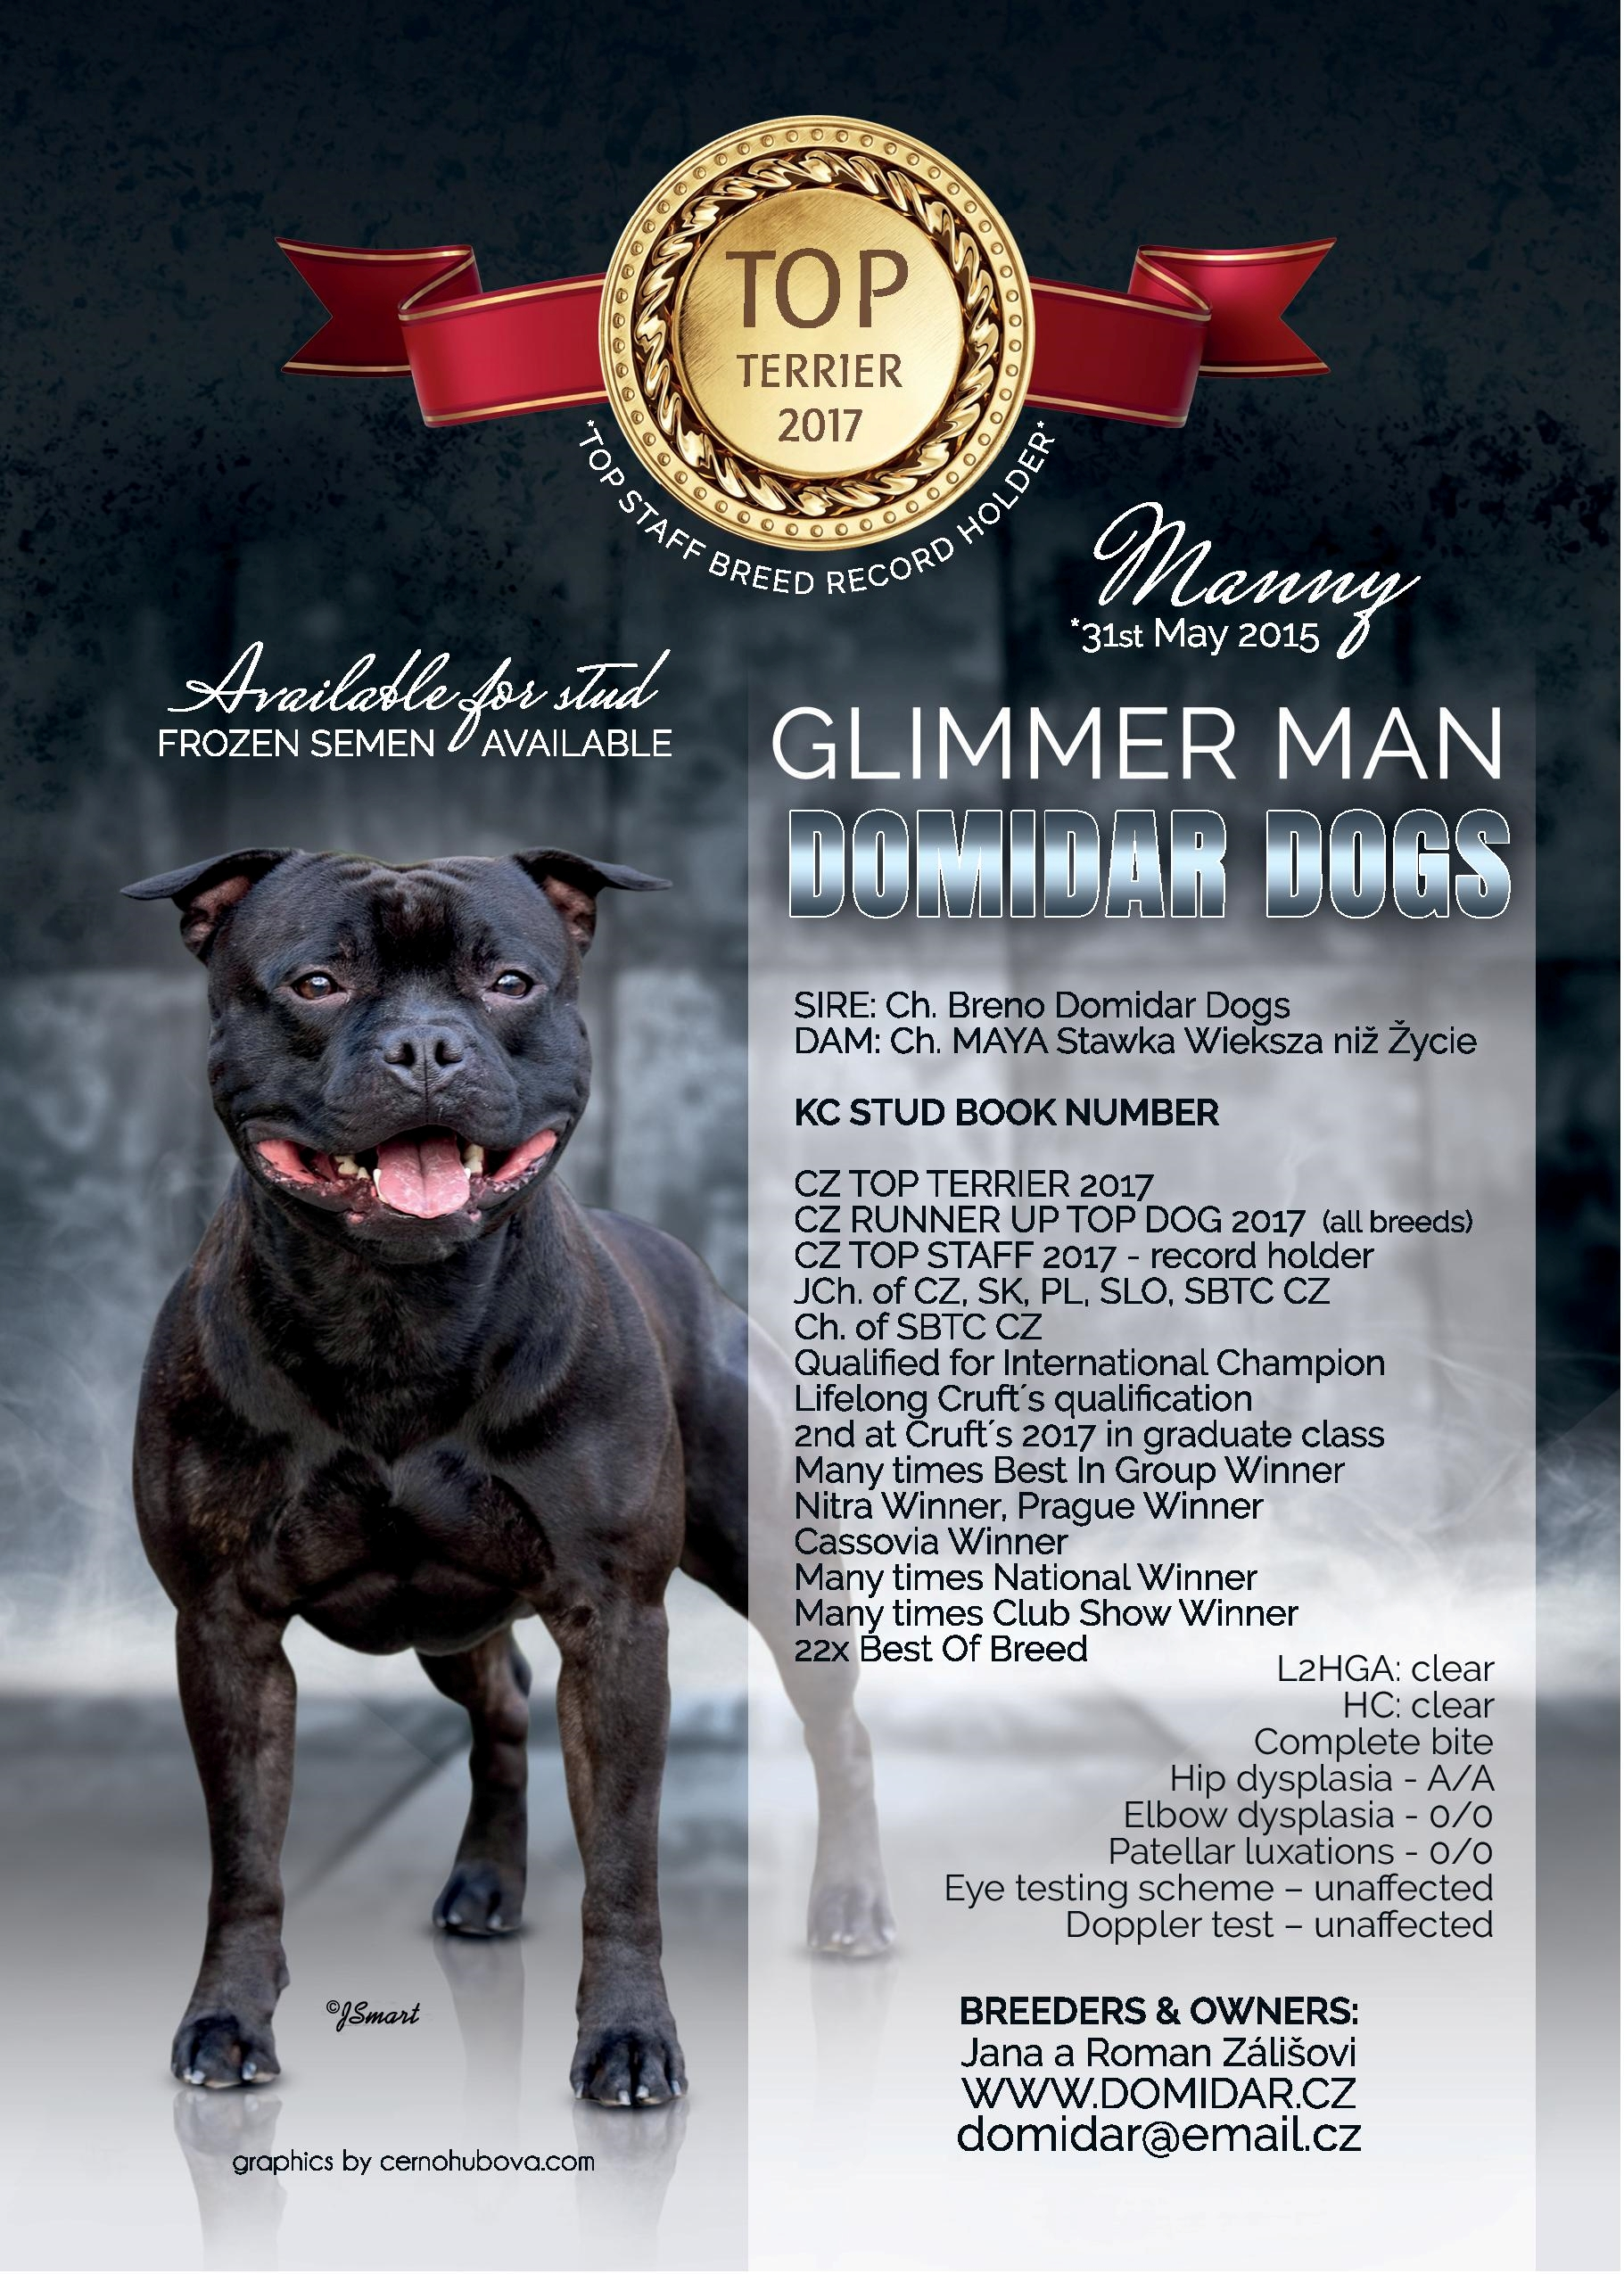 Glimmer man domidar dogs 2018 01 29